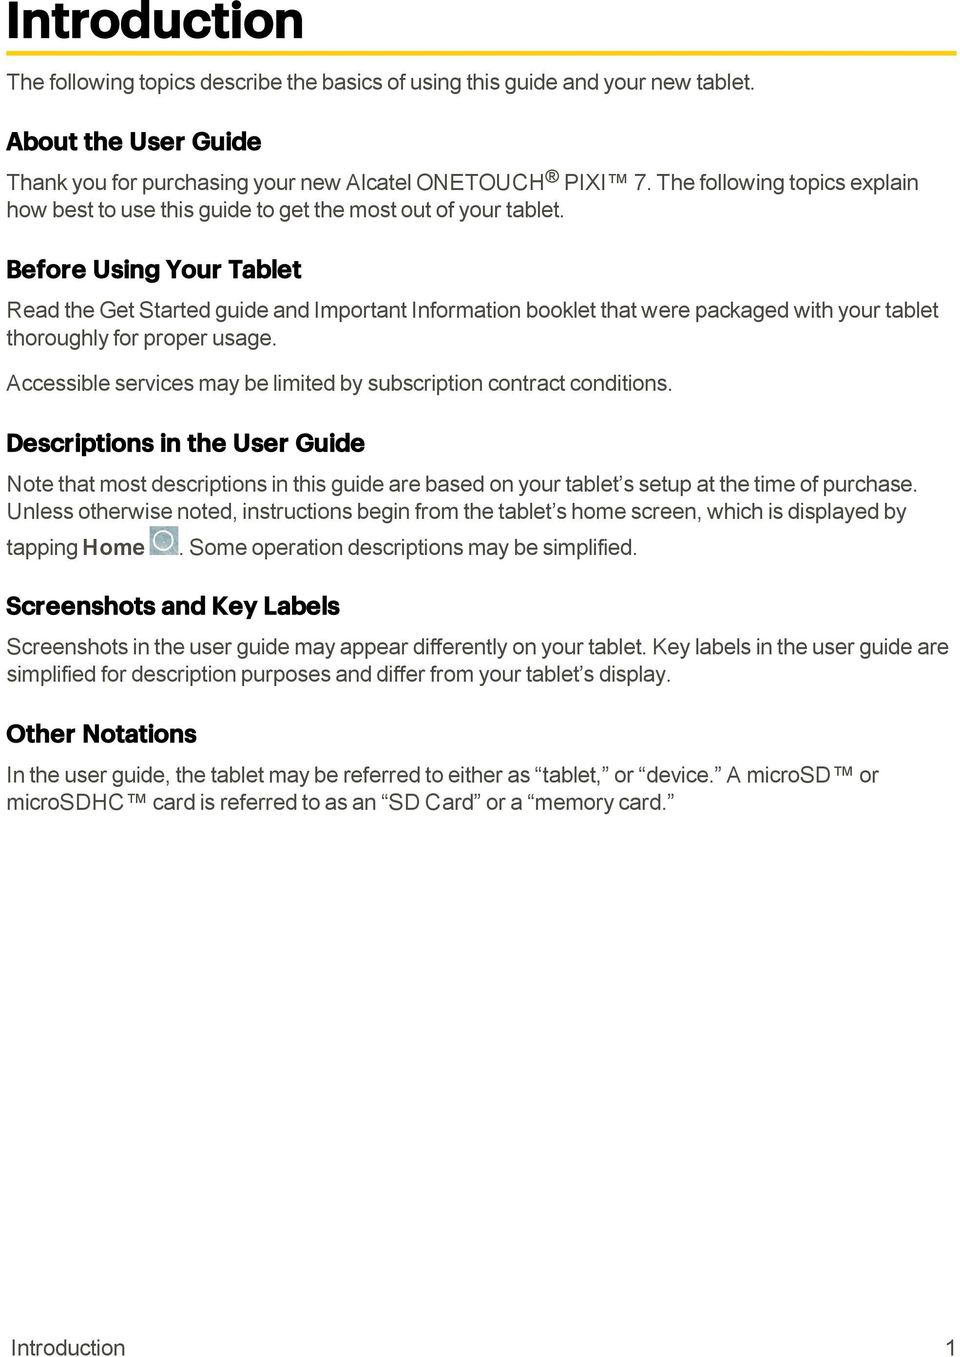 Before Using Your Tablet Read the Get Started guide and Important Information booklet that were packaged with your tablet thoroughly for proper usage.